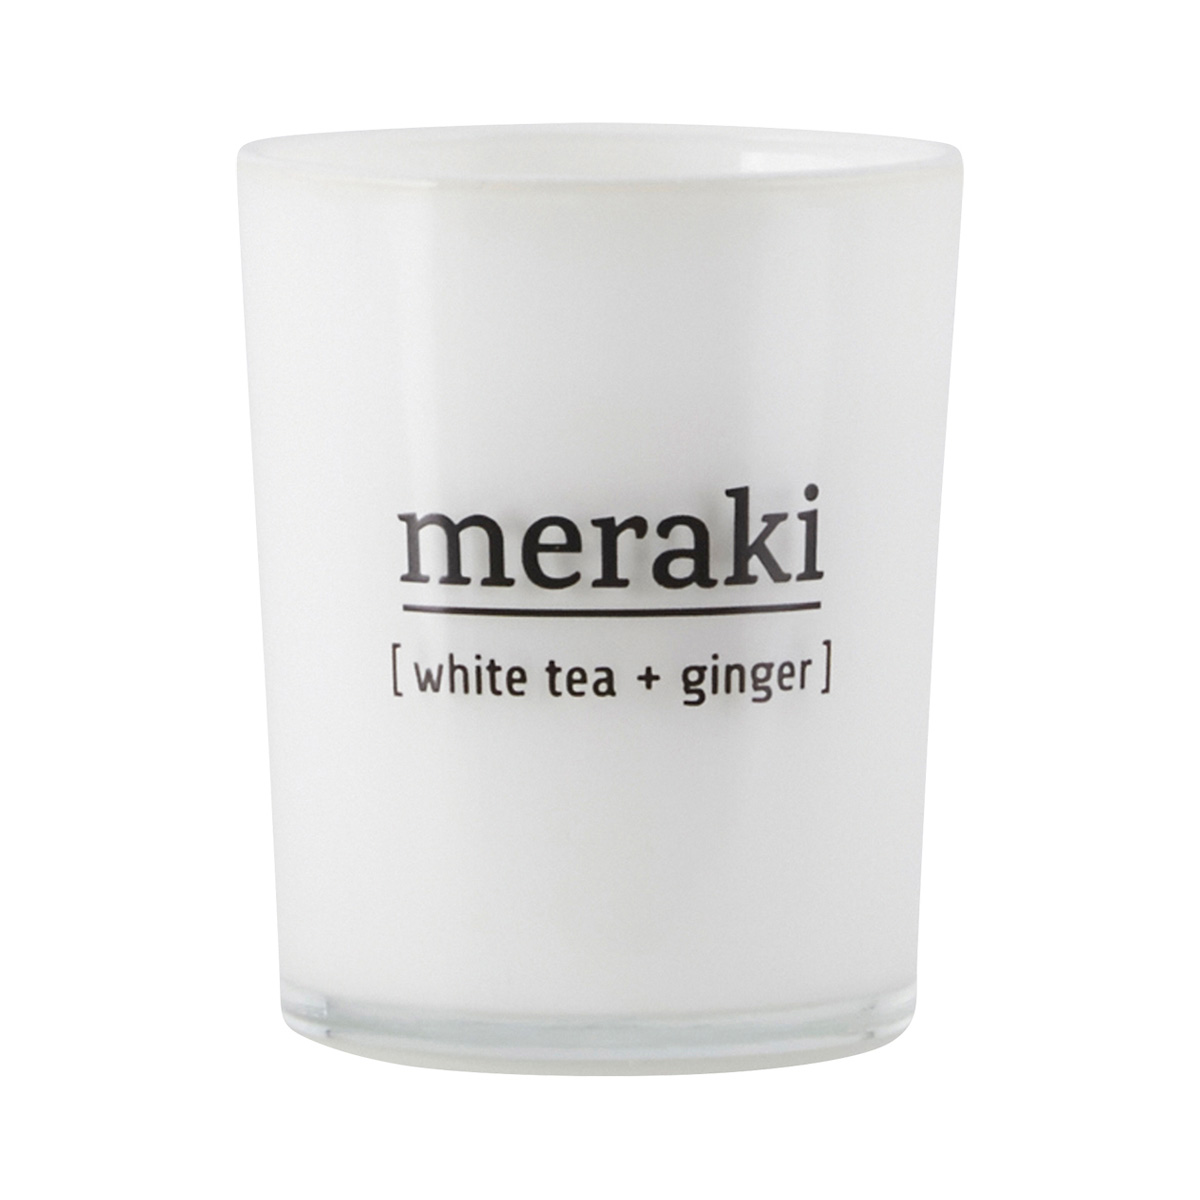 Mini Meraki White Tea & Ginger Candle